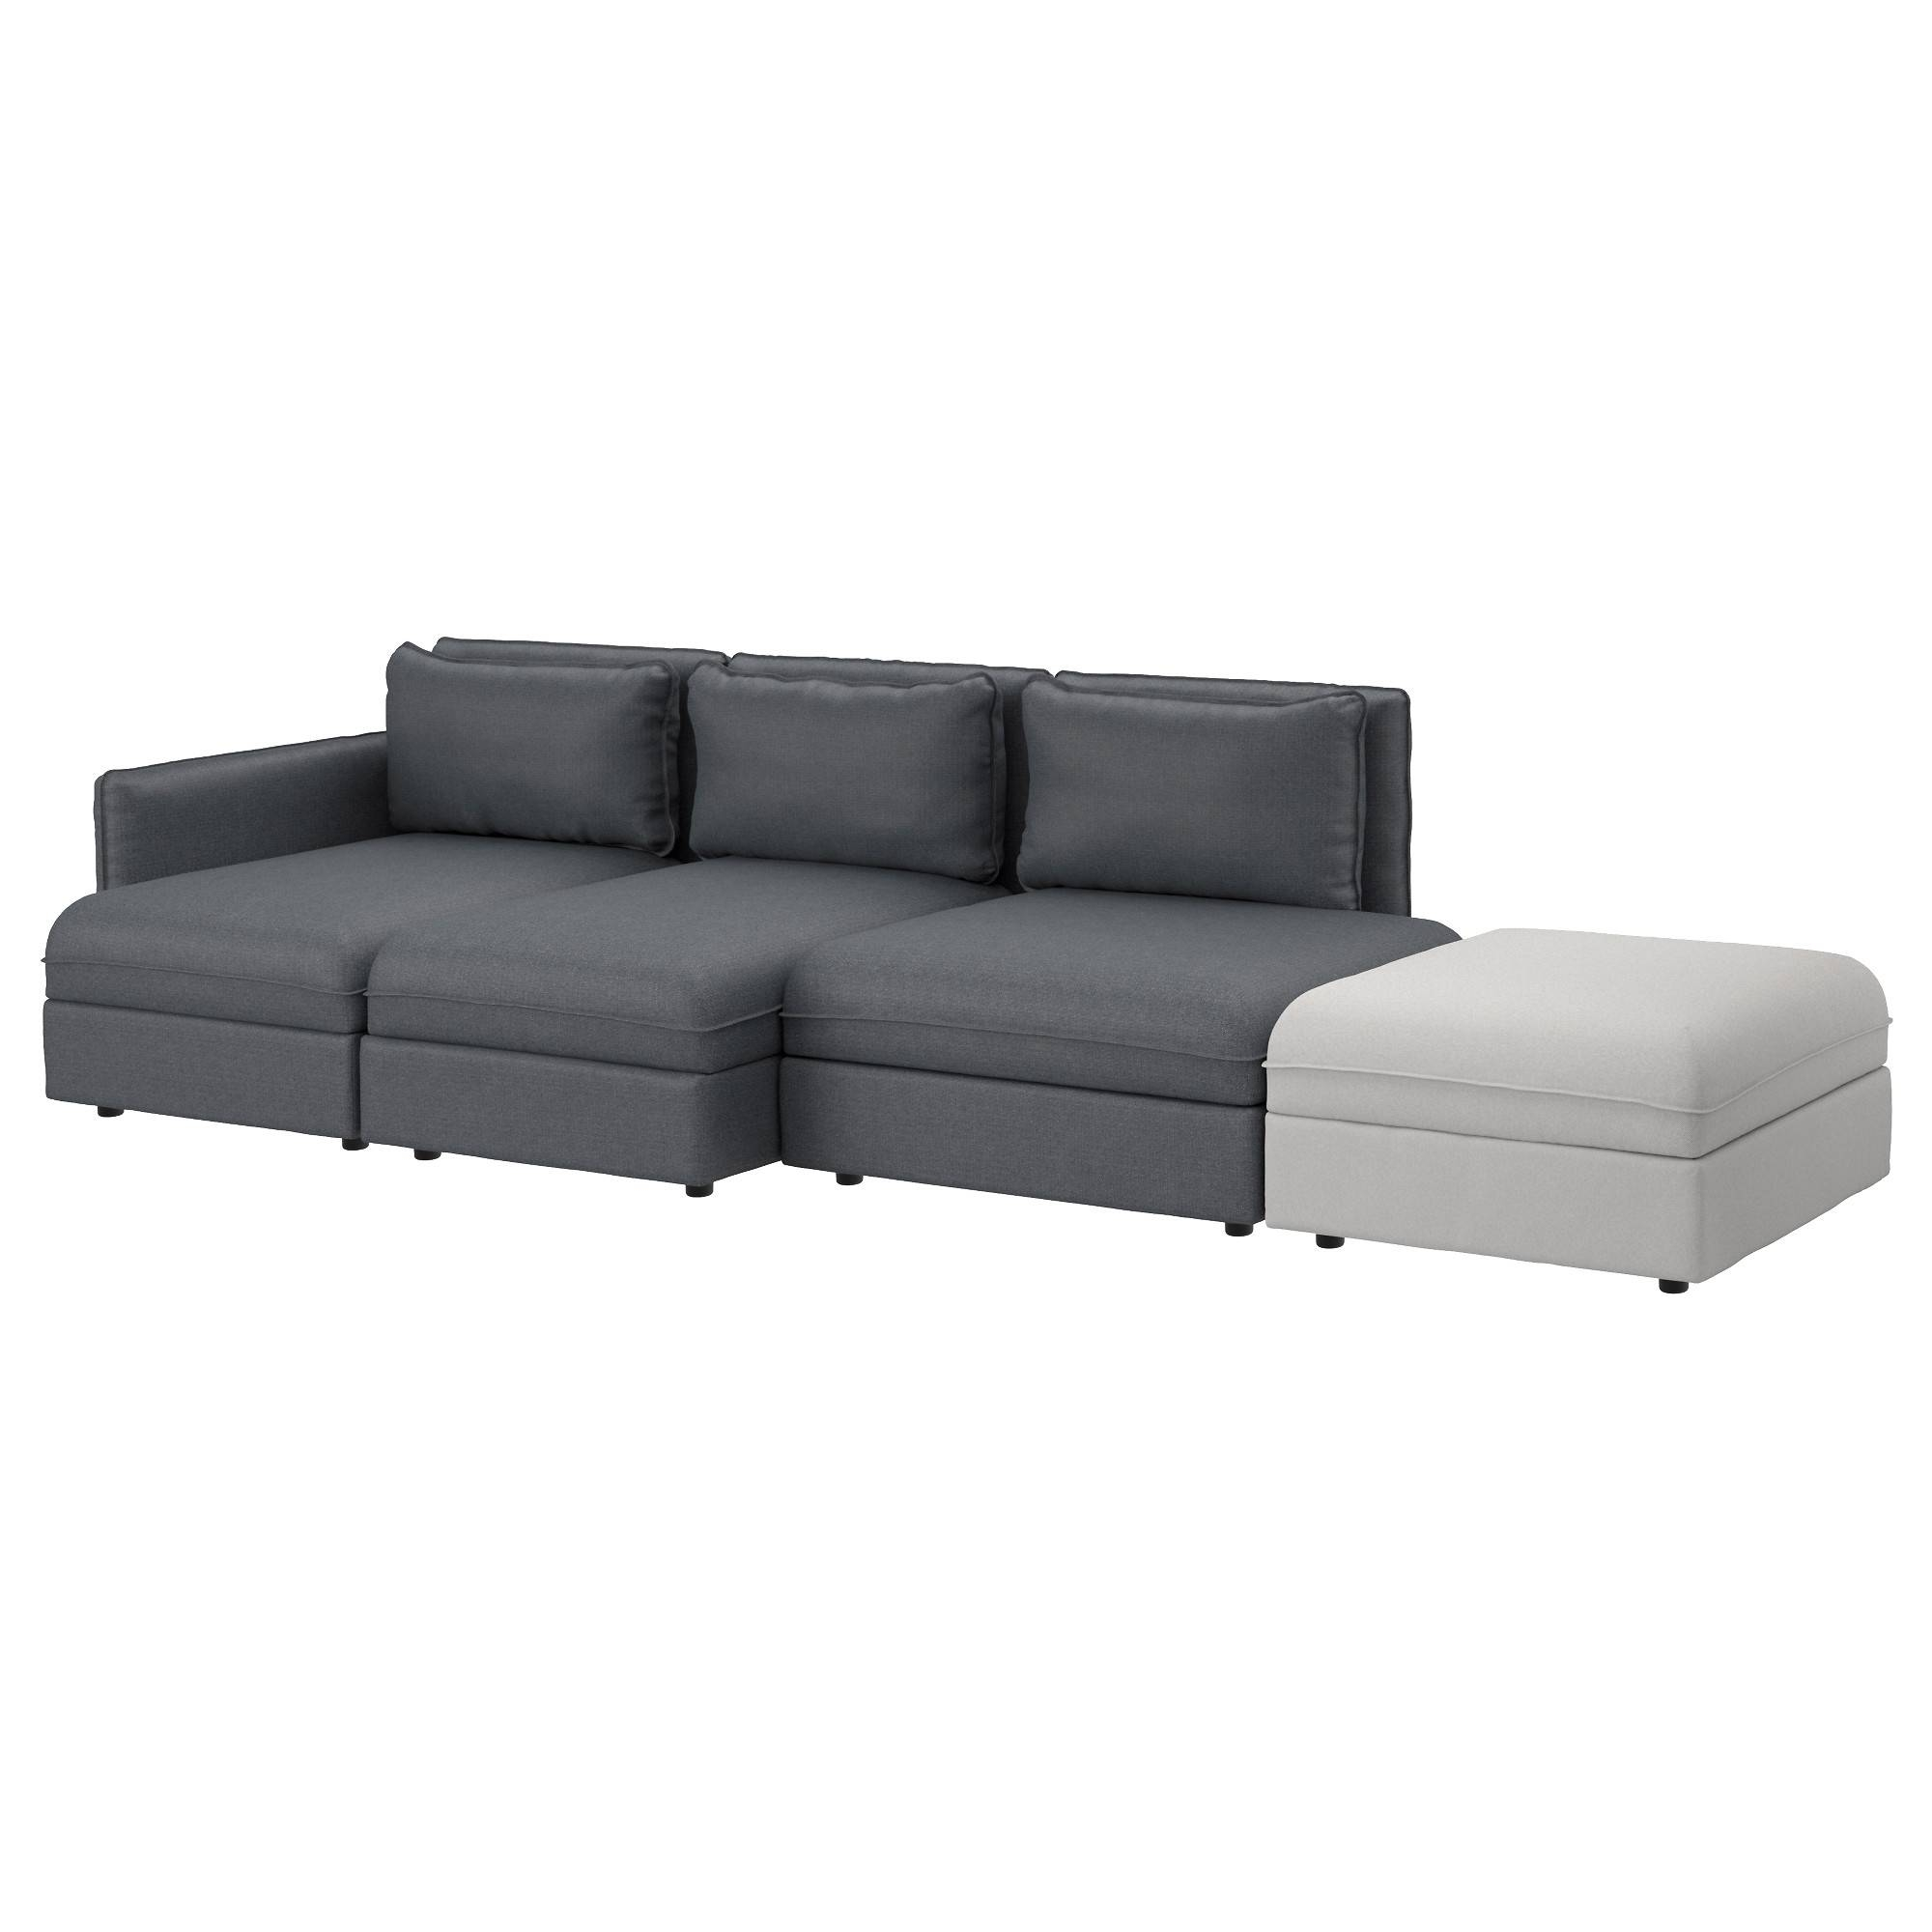 Fabric Sofas - Modern & Contemporary - Ikea intended for 4 Seater Couch (Image 14 of 30)